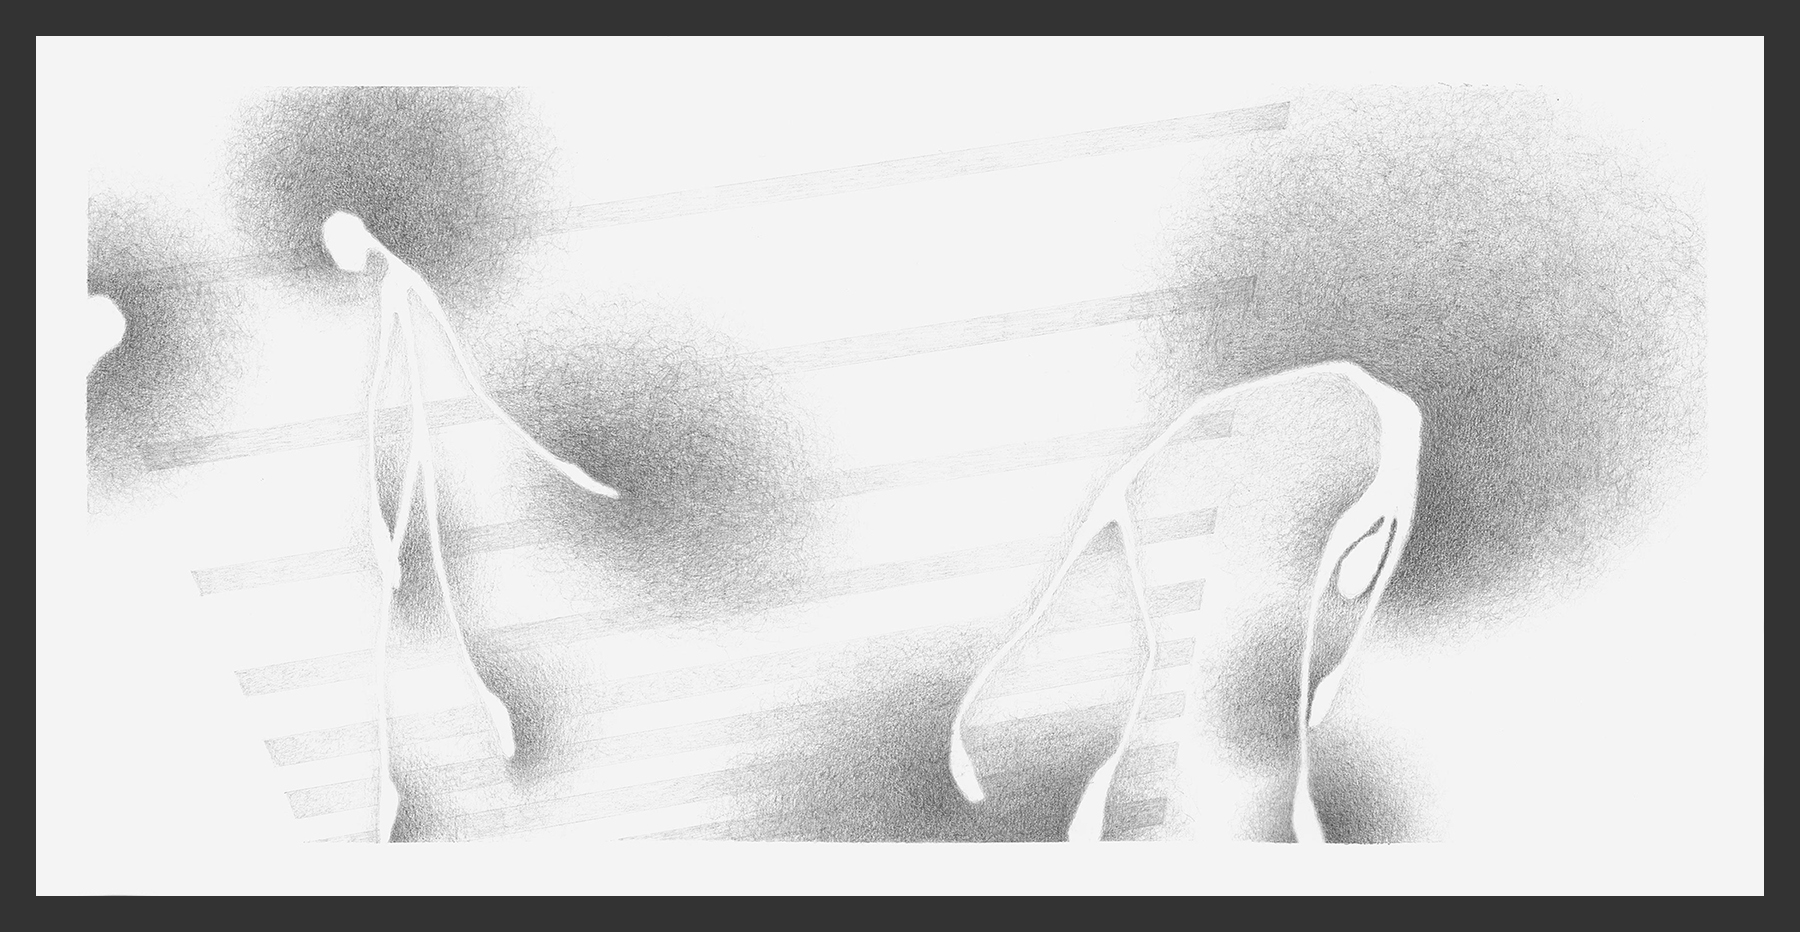 1-Website-Meditation-I-Graphite-12x24-Astrid-Muller-Karger